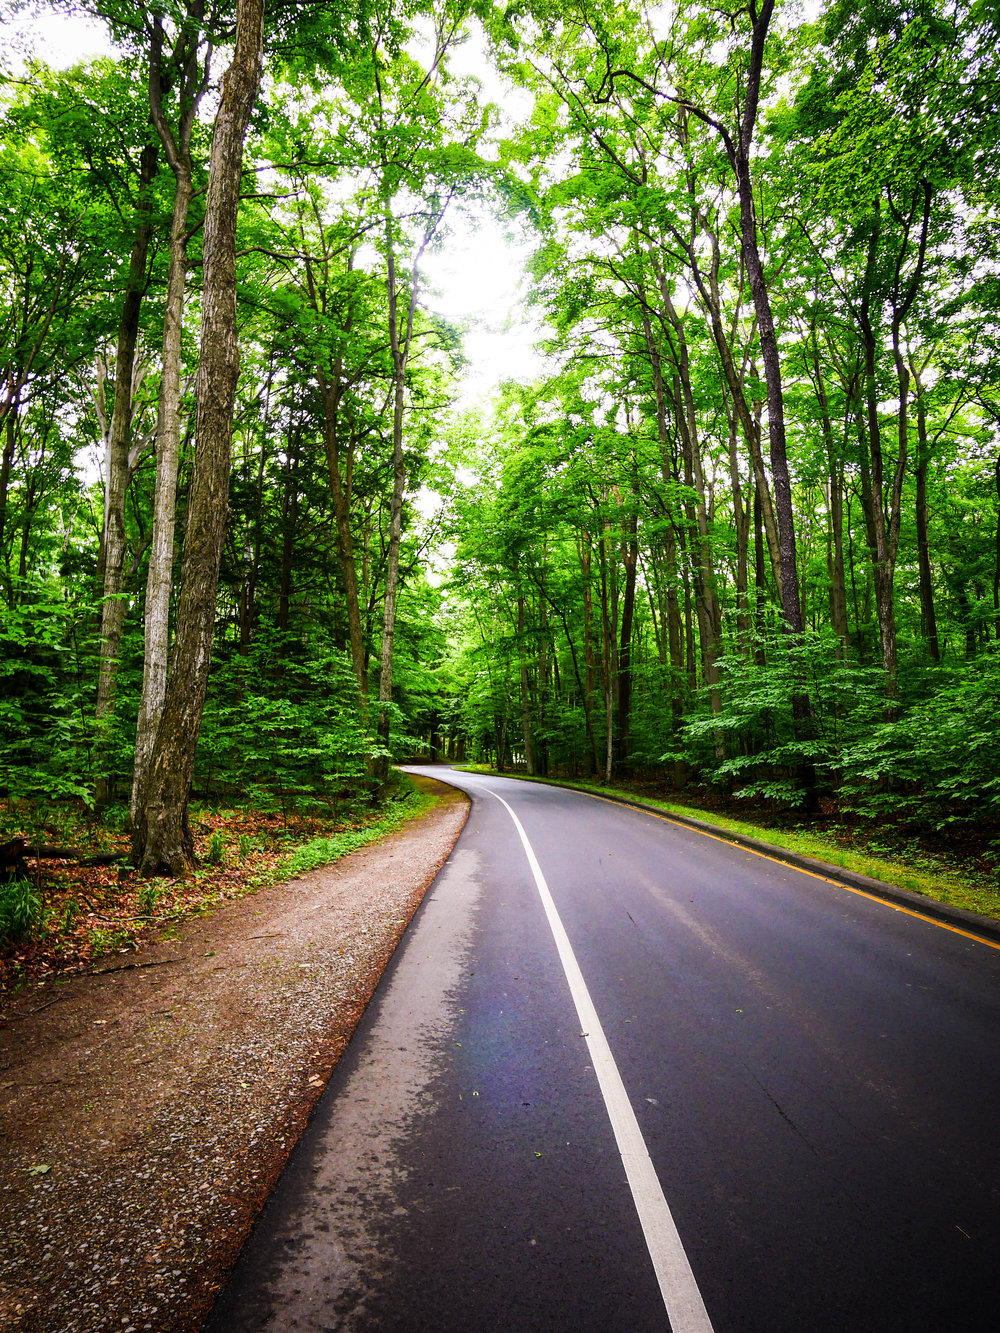 Explore the beautiful forests on this scenic drive through Sleeping Bear Dunes National Lakeshore.